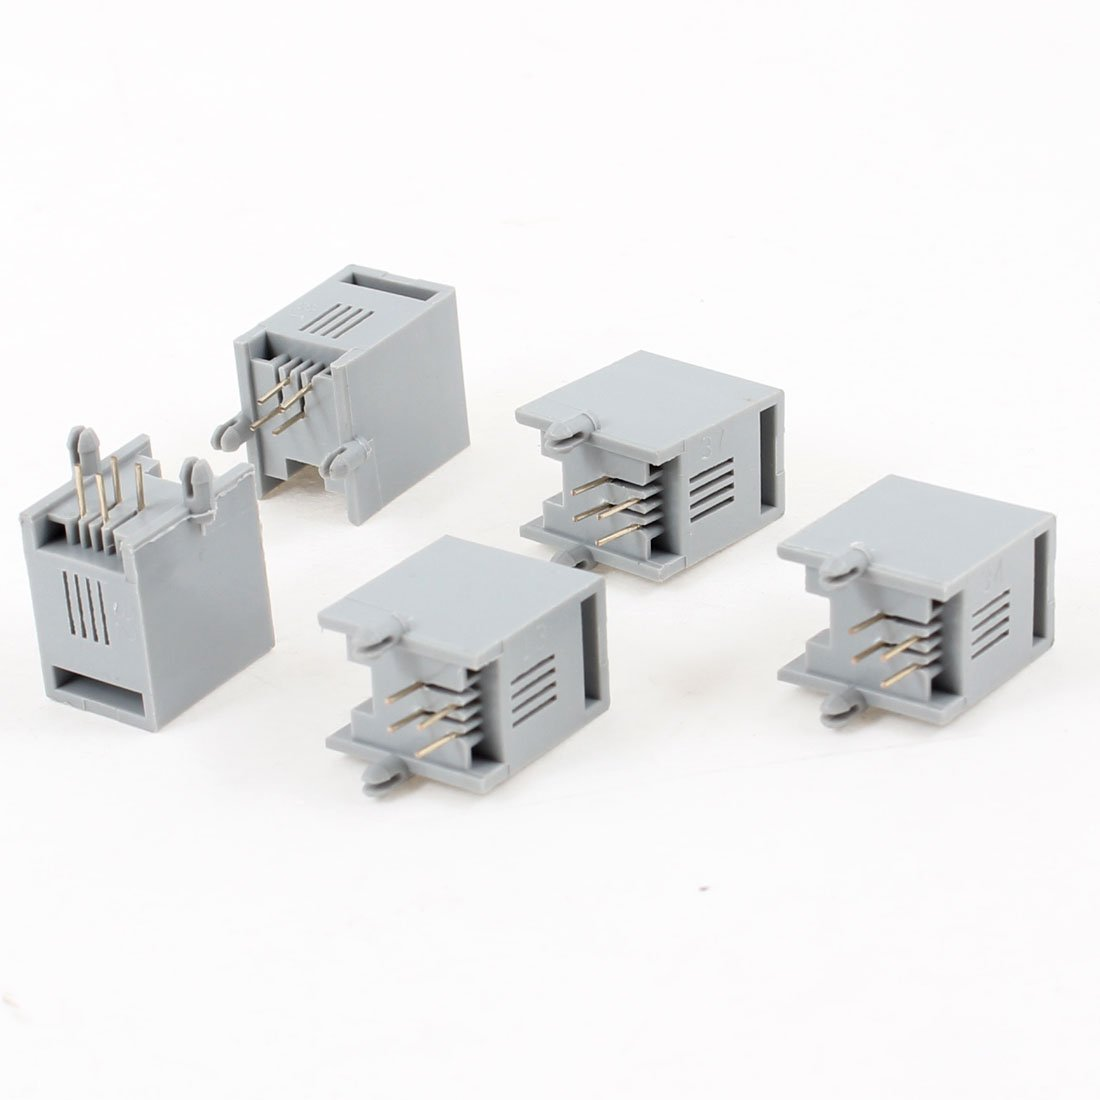 4 Pcs Unshielded RJ9 4P4C 4 Round Pin Network Modular PCB Connector Jacks Gray